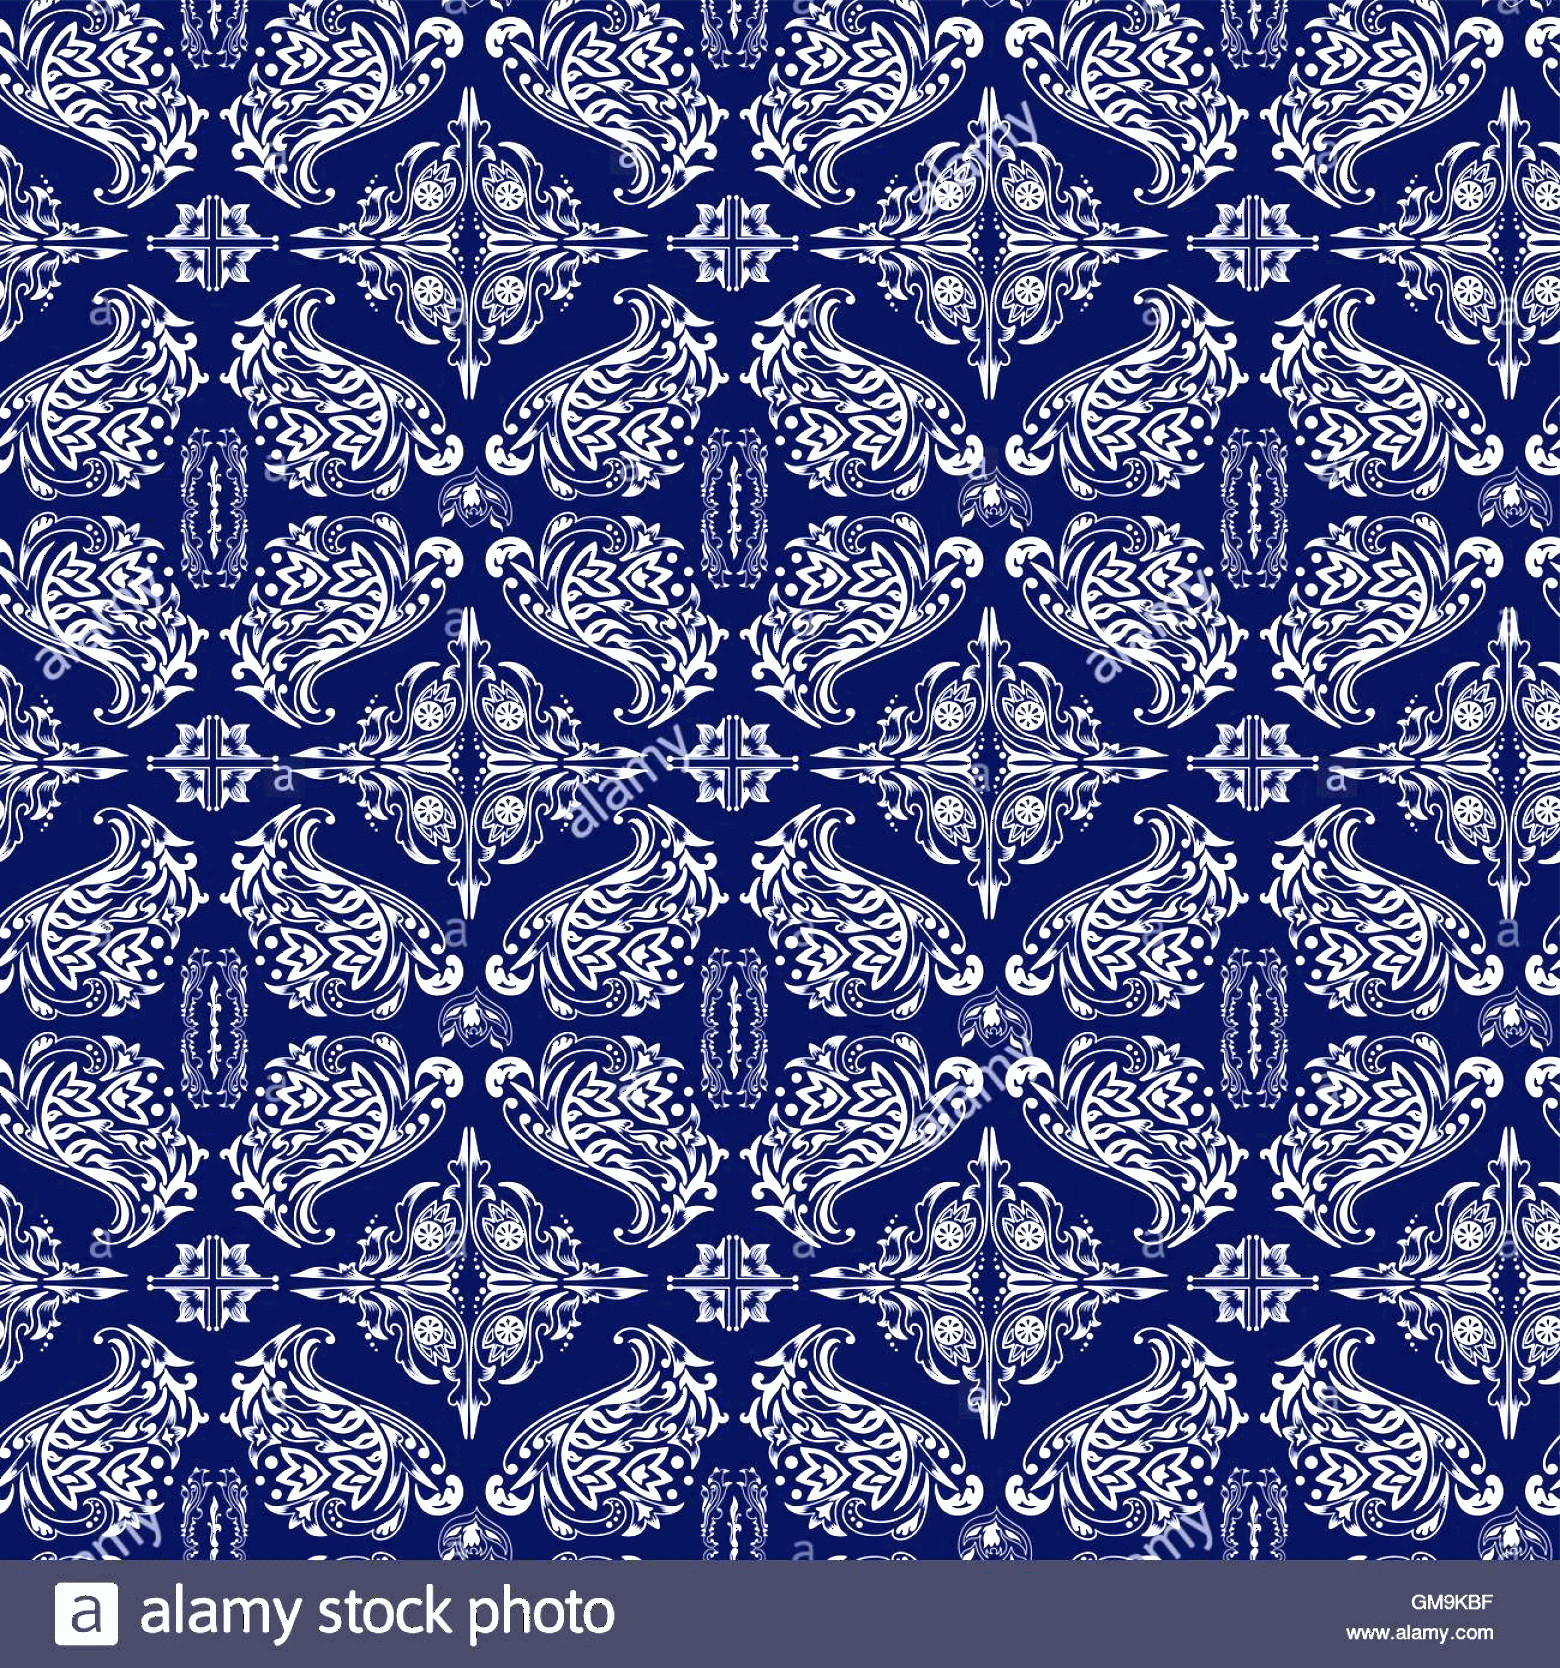 Blue And White Damask Vectors: Stock Photo White And Blue Luxury Damask Pattern